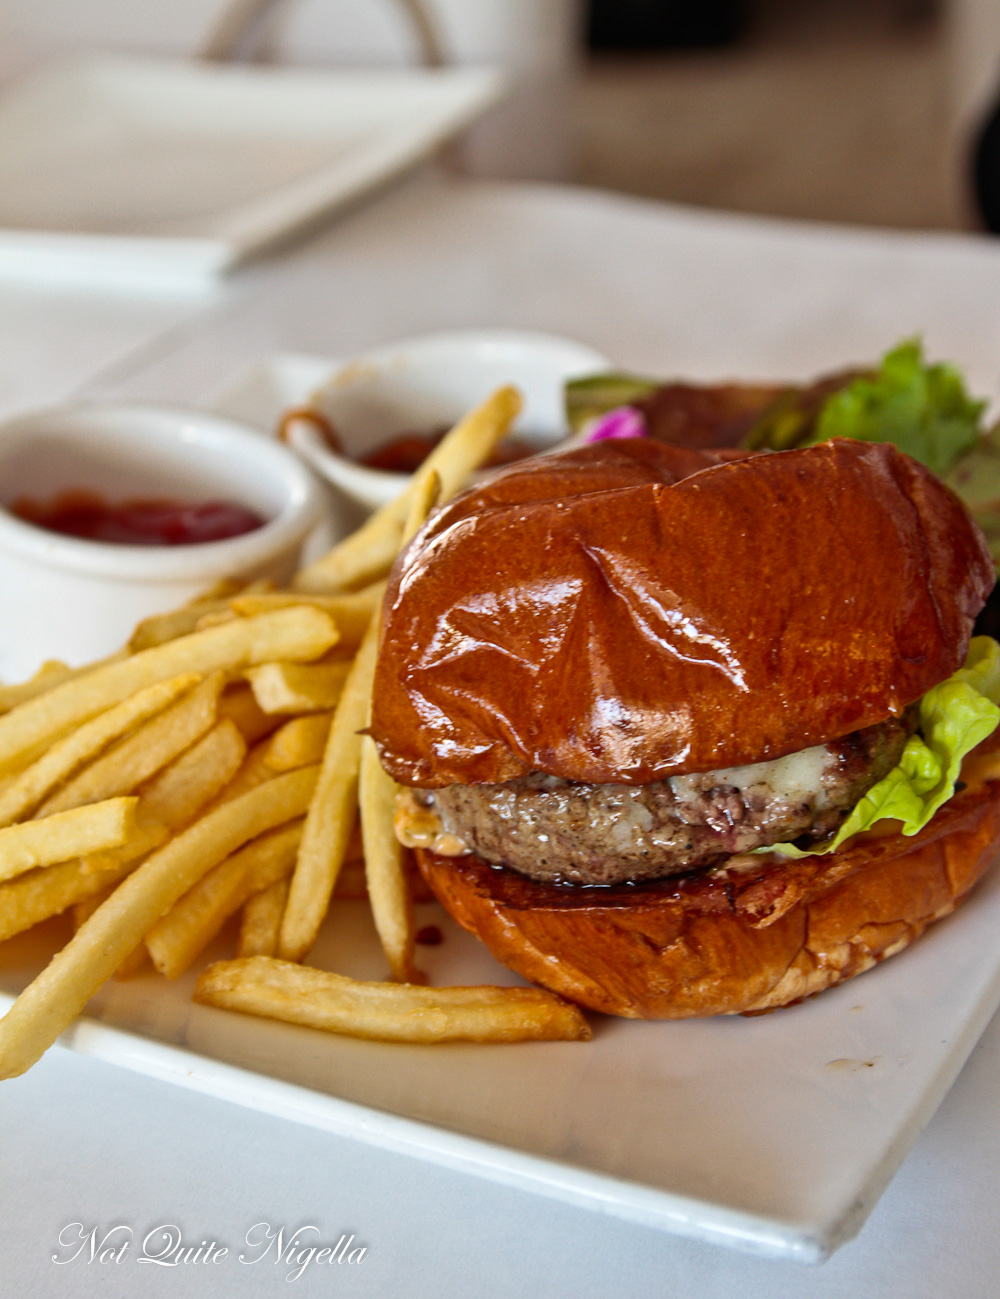 Beverly Hills Food